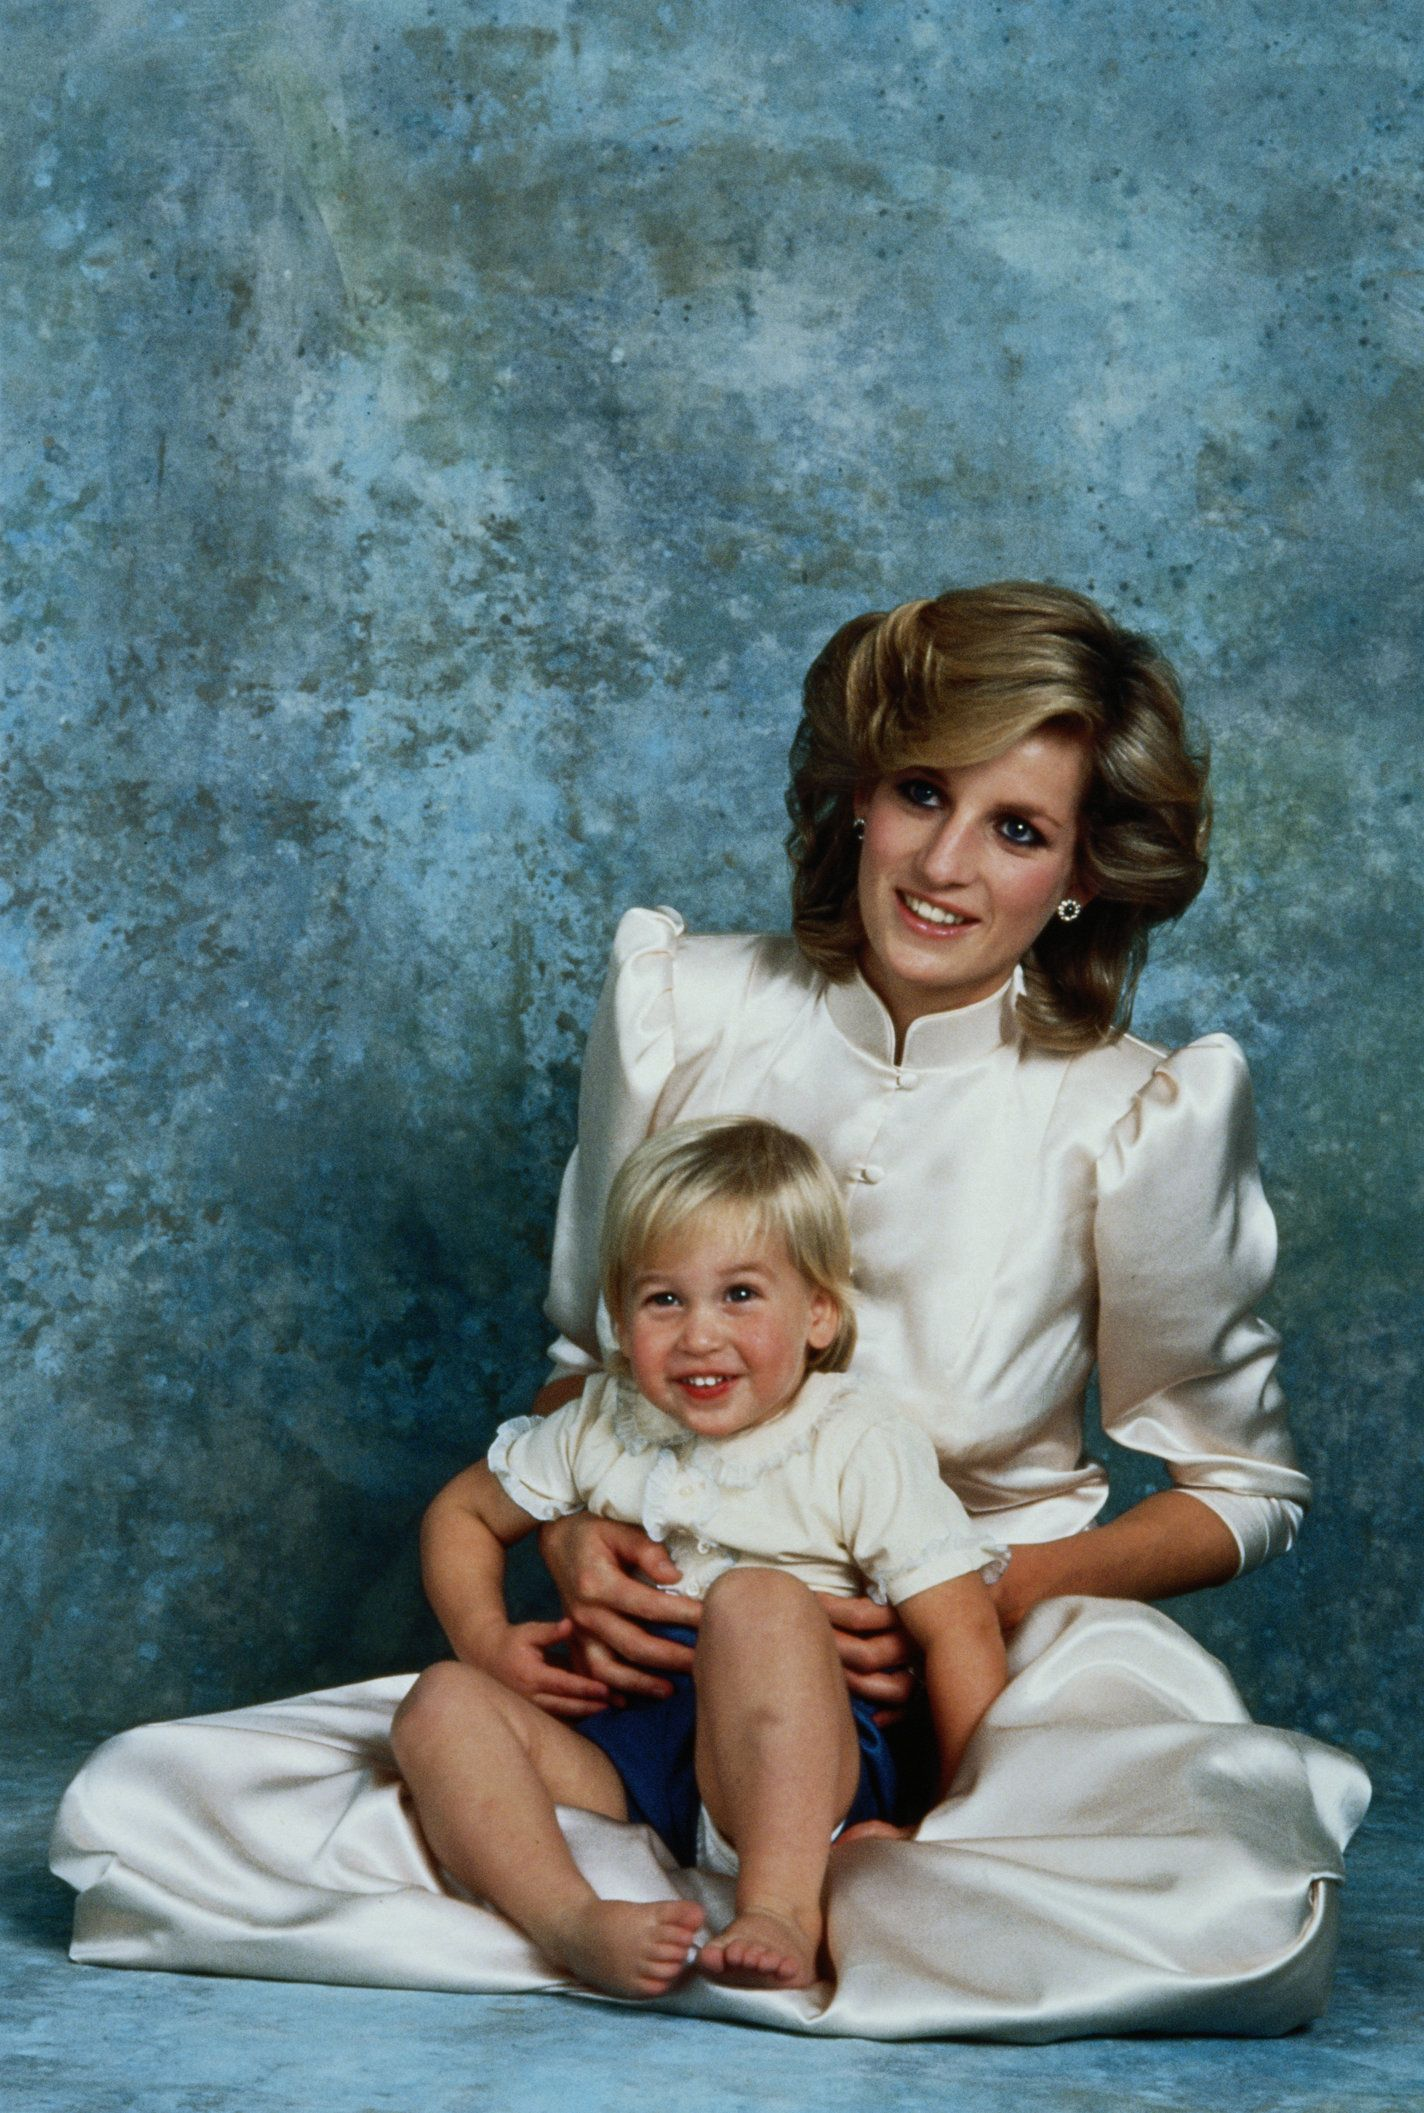 William And Diana The Early Years Princesa Diana Lady Diana Spencer Familia Real Británica